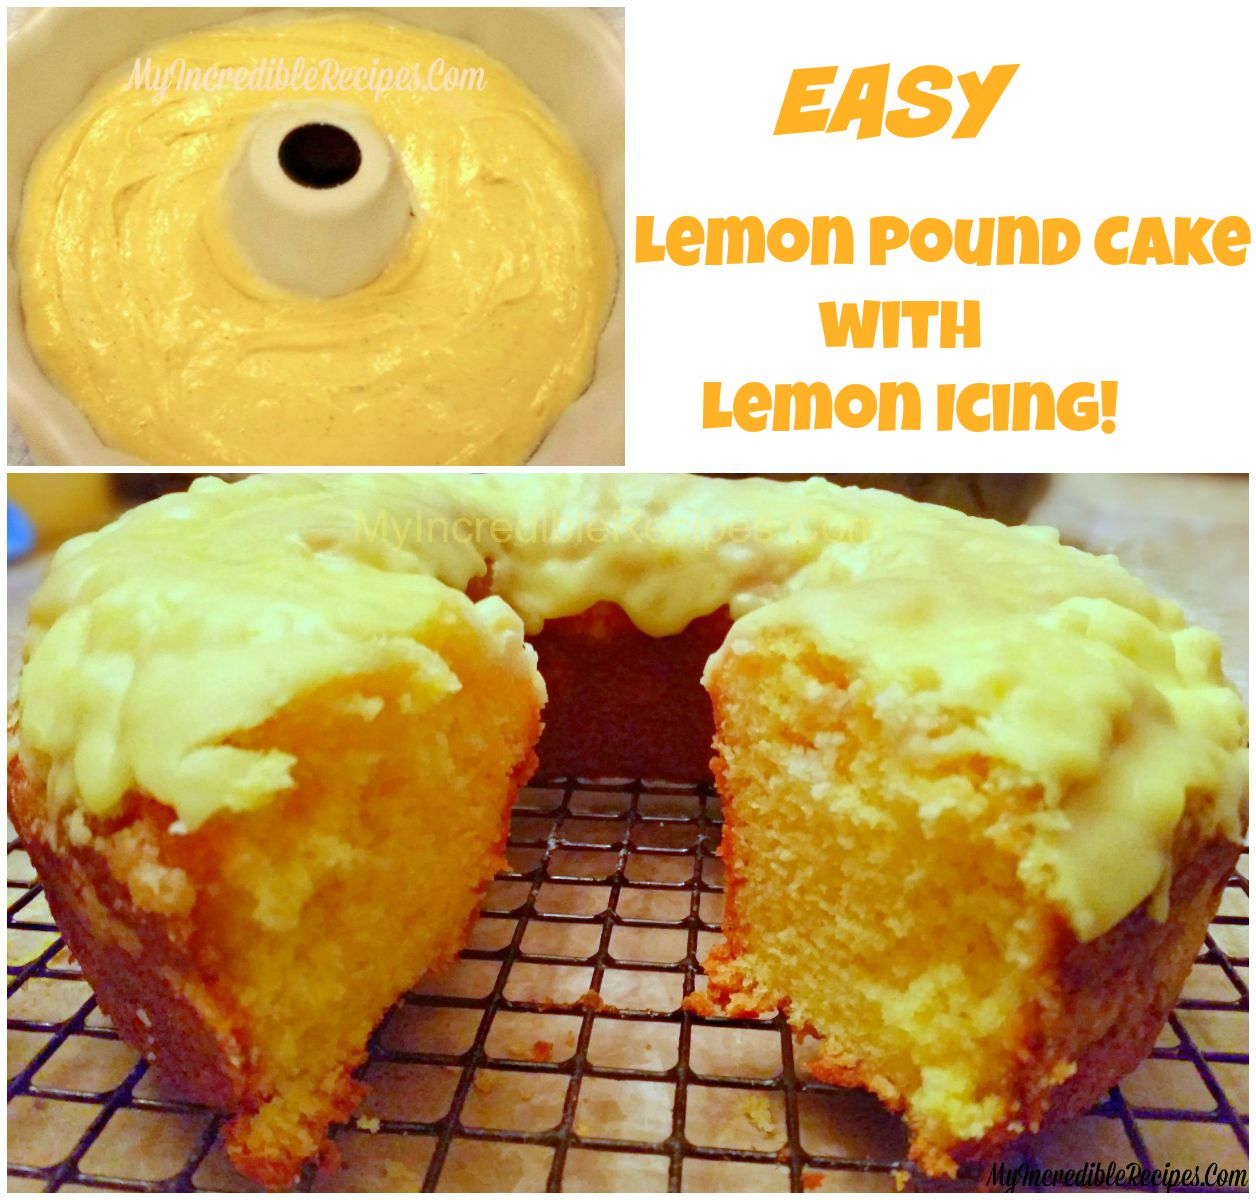 Easy Lemon Pound Cake With Lemon Icing